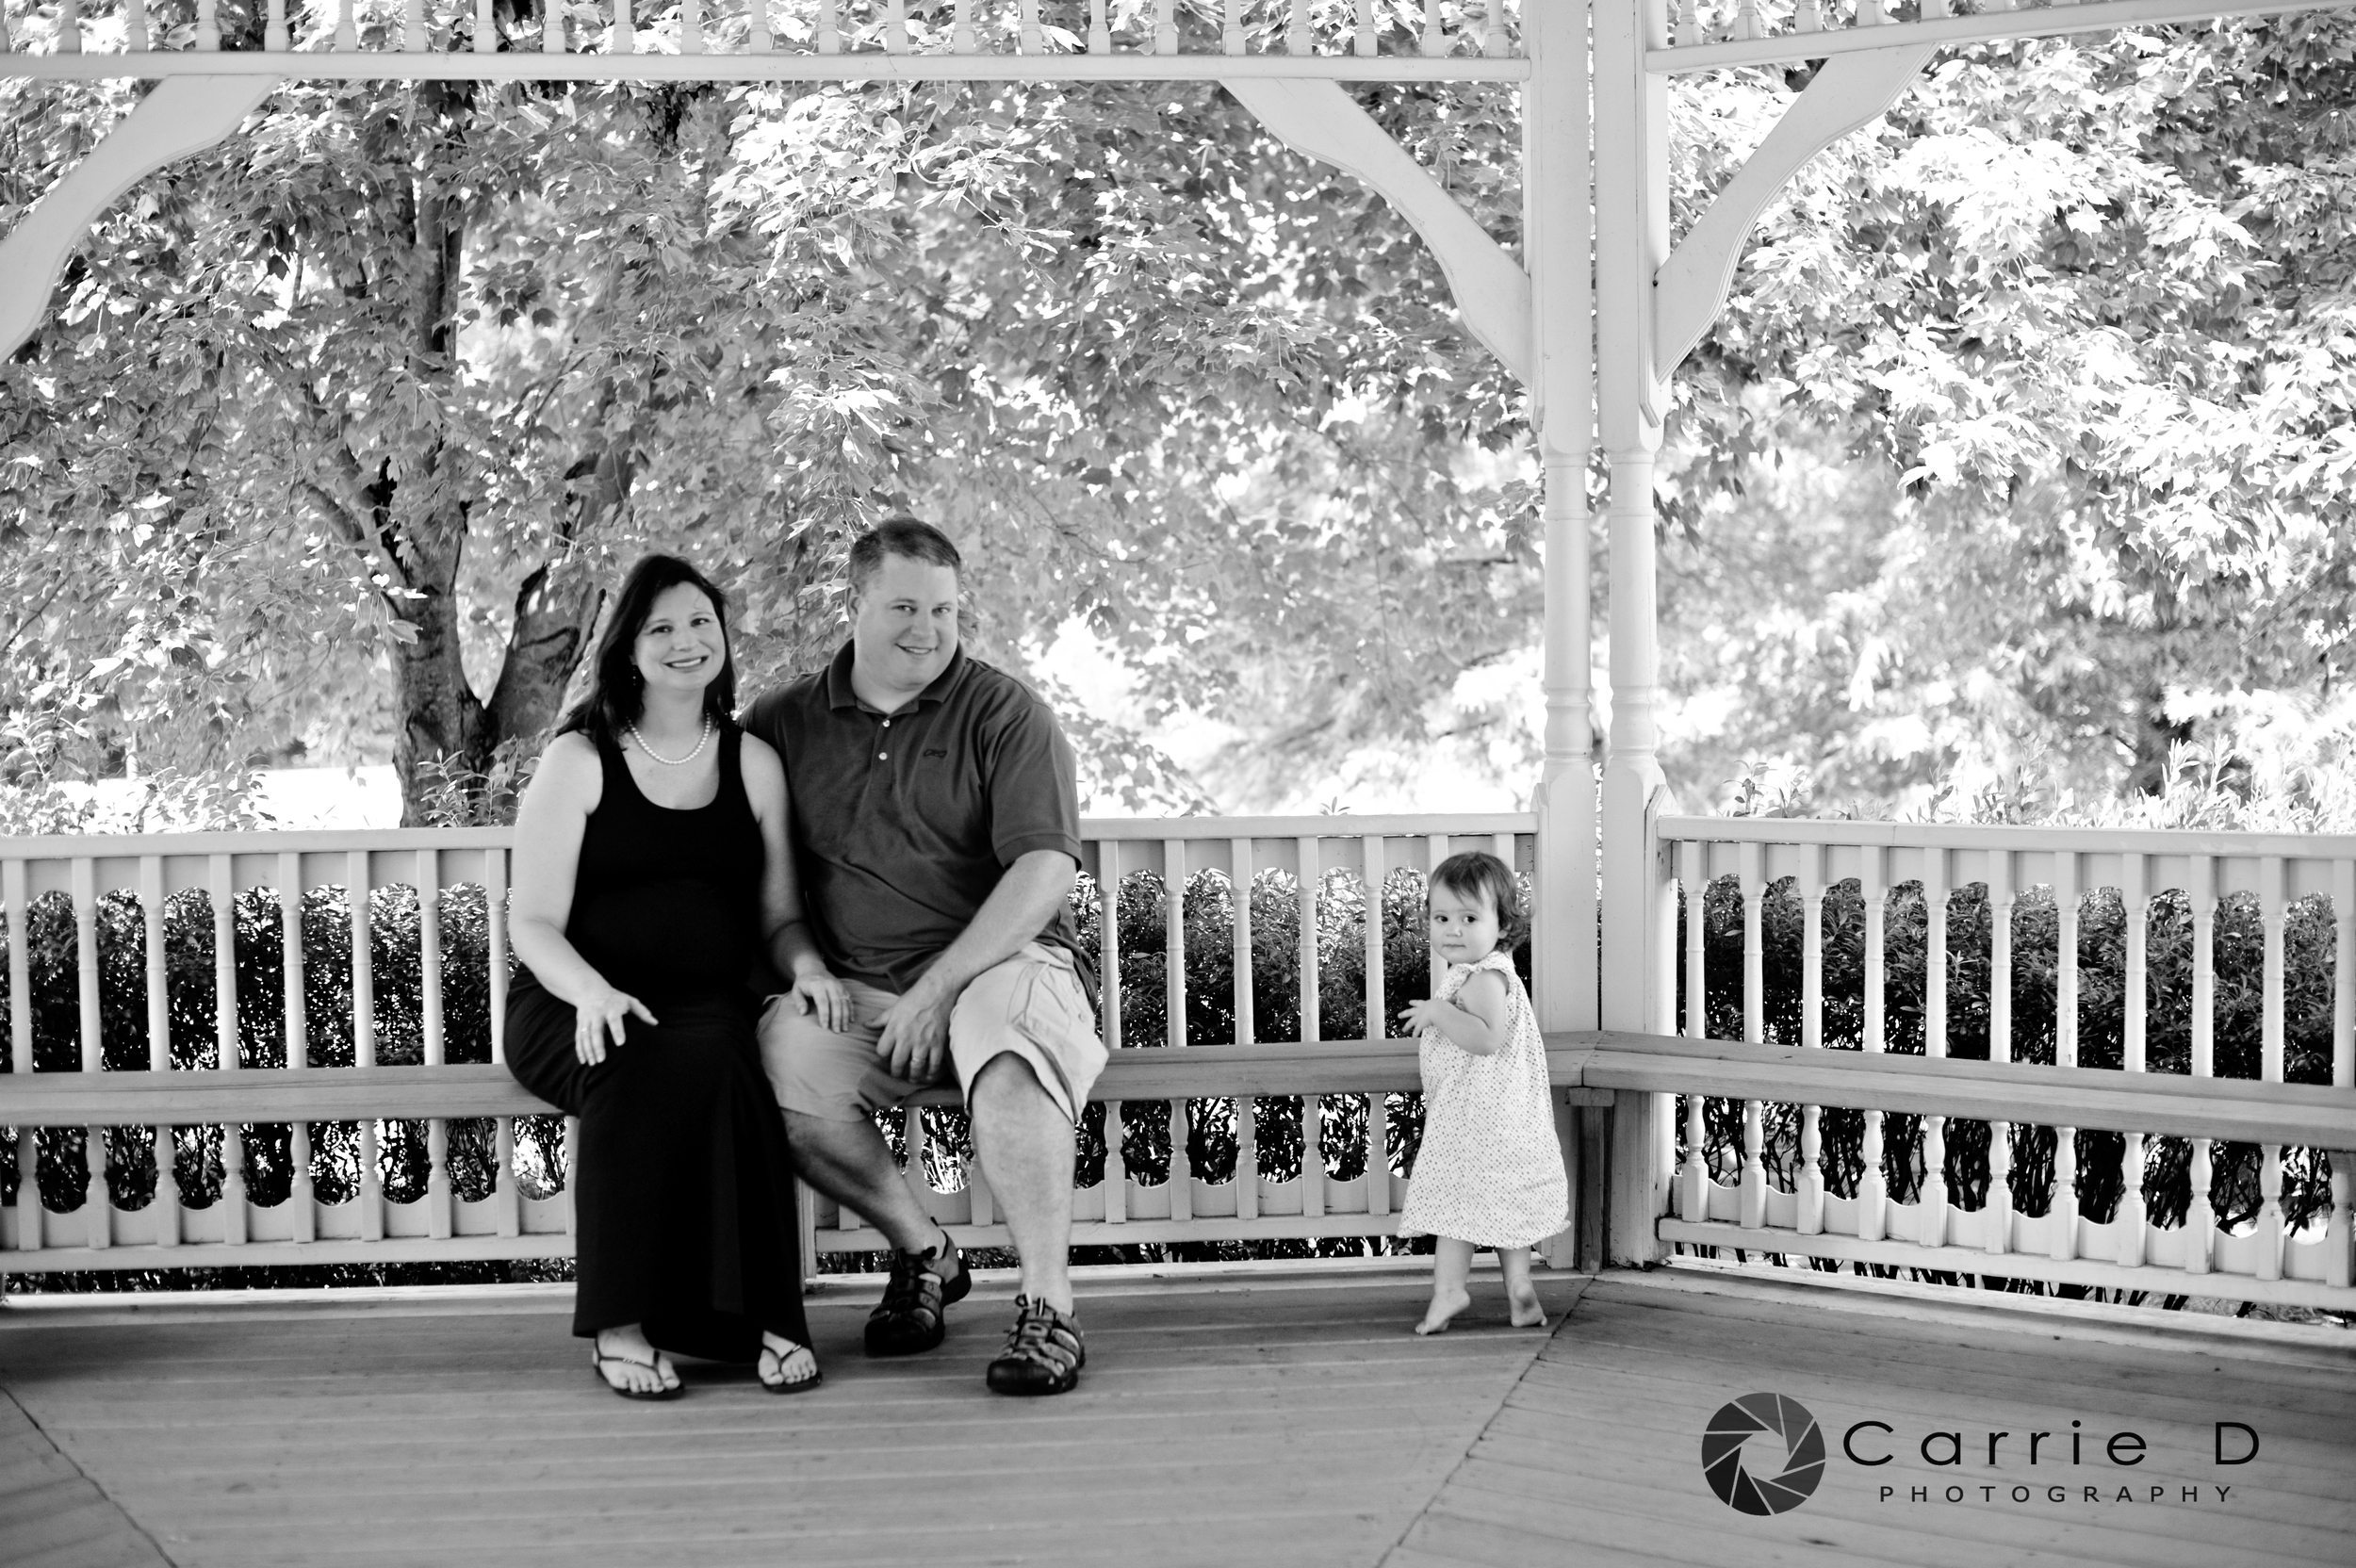 Annapolis Photographer – Annapolis Portrait Photographer – Annapolis Family Photographer – Annapolis Child Photographer – Annapolis Sibling Photographer – Annapolis Sibling Photographer  - Annapolis Natural Light Photographer – Annapolis Lifestyle Photographer – Annapolis Natural Light Portrait Photographer - Maryland Photographer – Maryland Portrait Photographer – Maryland Maternity Photographer - Maryland Family Photographer – Maryland Child Photographer – Maryland Sibling Photographer – Maryland Natural Light Photographer – Maryland Lifestyle Photographer – Maryland Natural Light Portrait Photographer